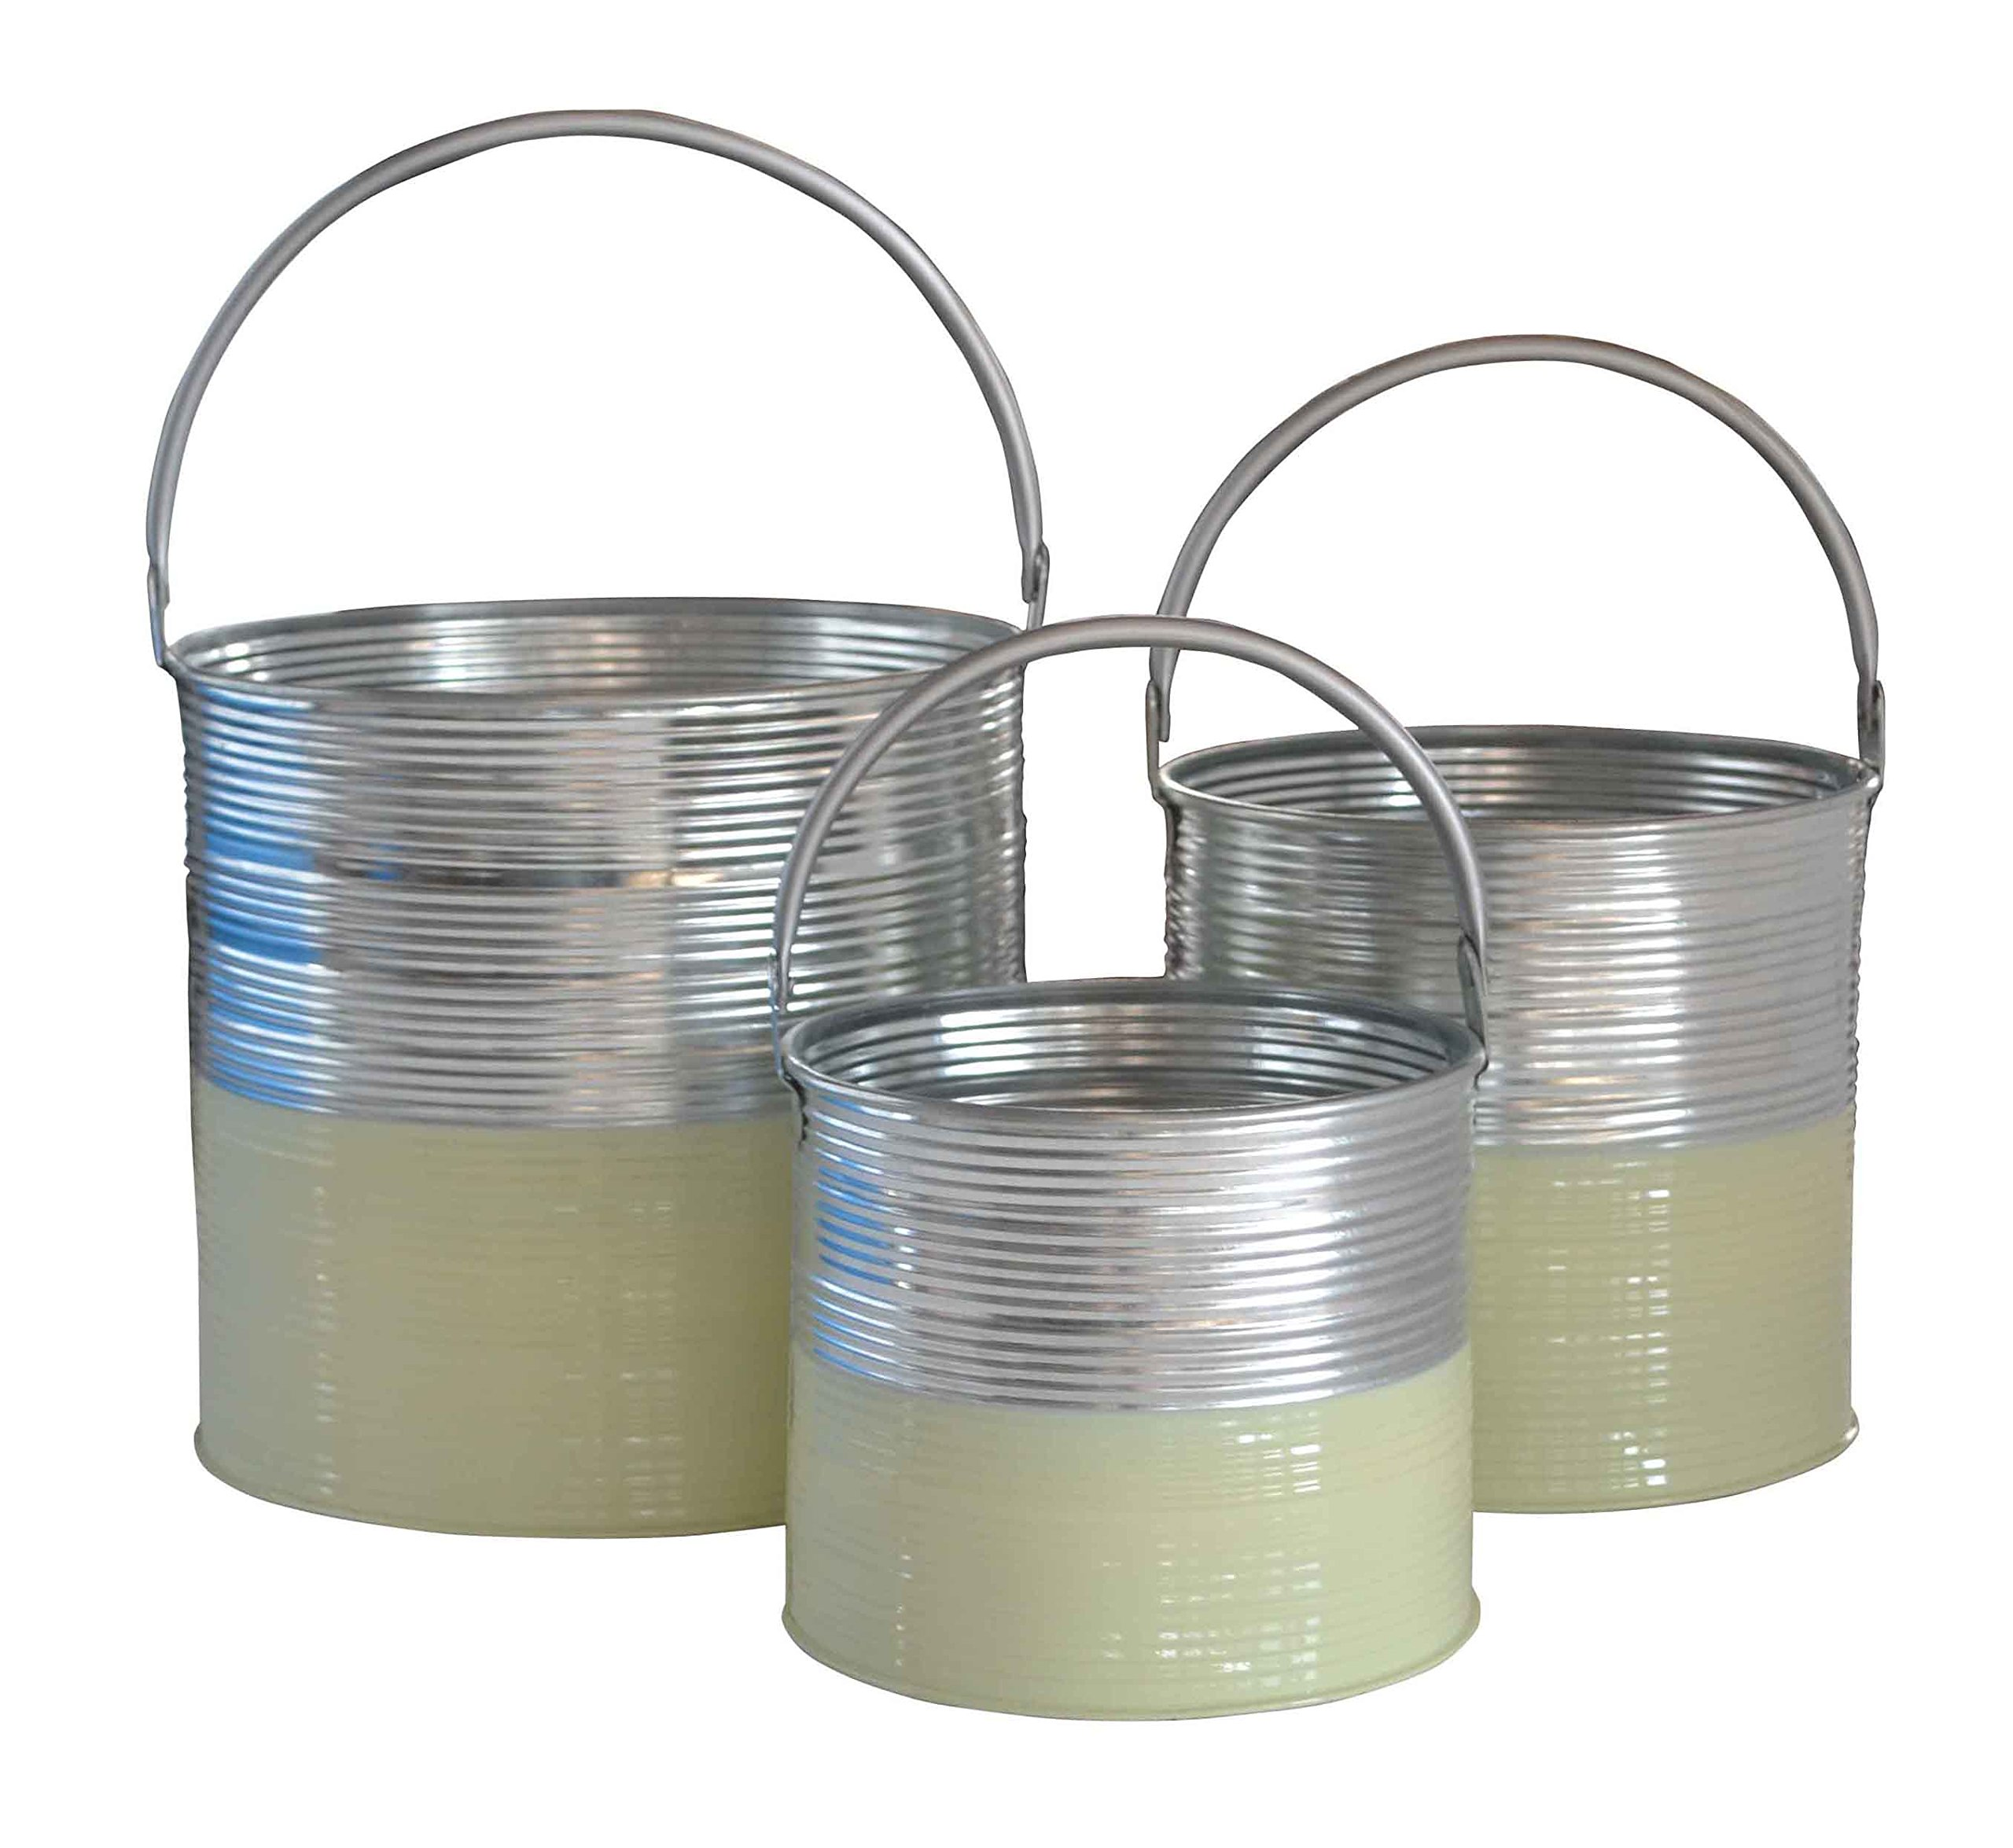 Cheung's FP-4042-3MG Galvanized Half Buckets with Handles| Set of 3| Mint Green